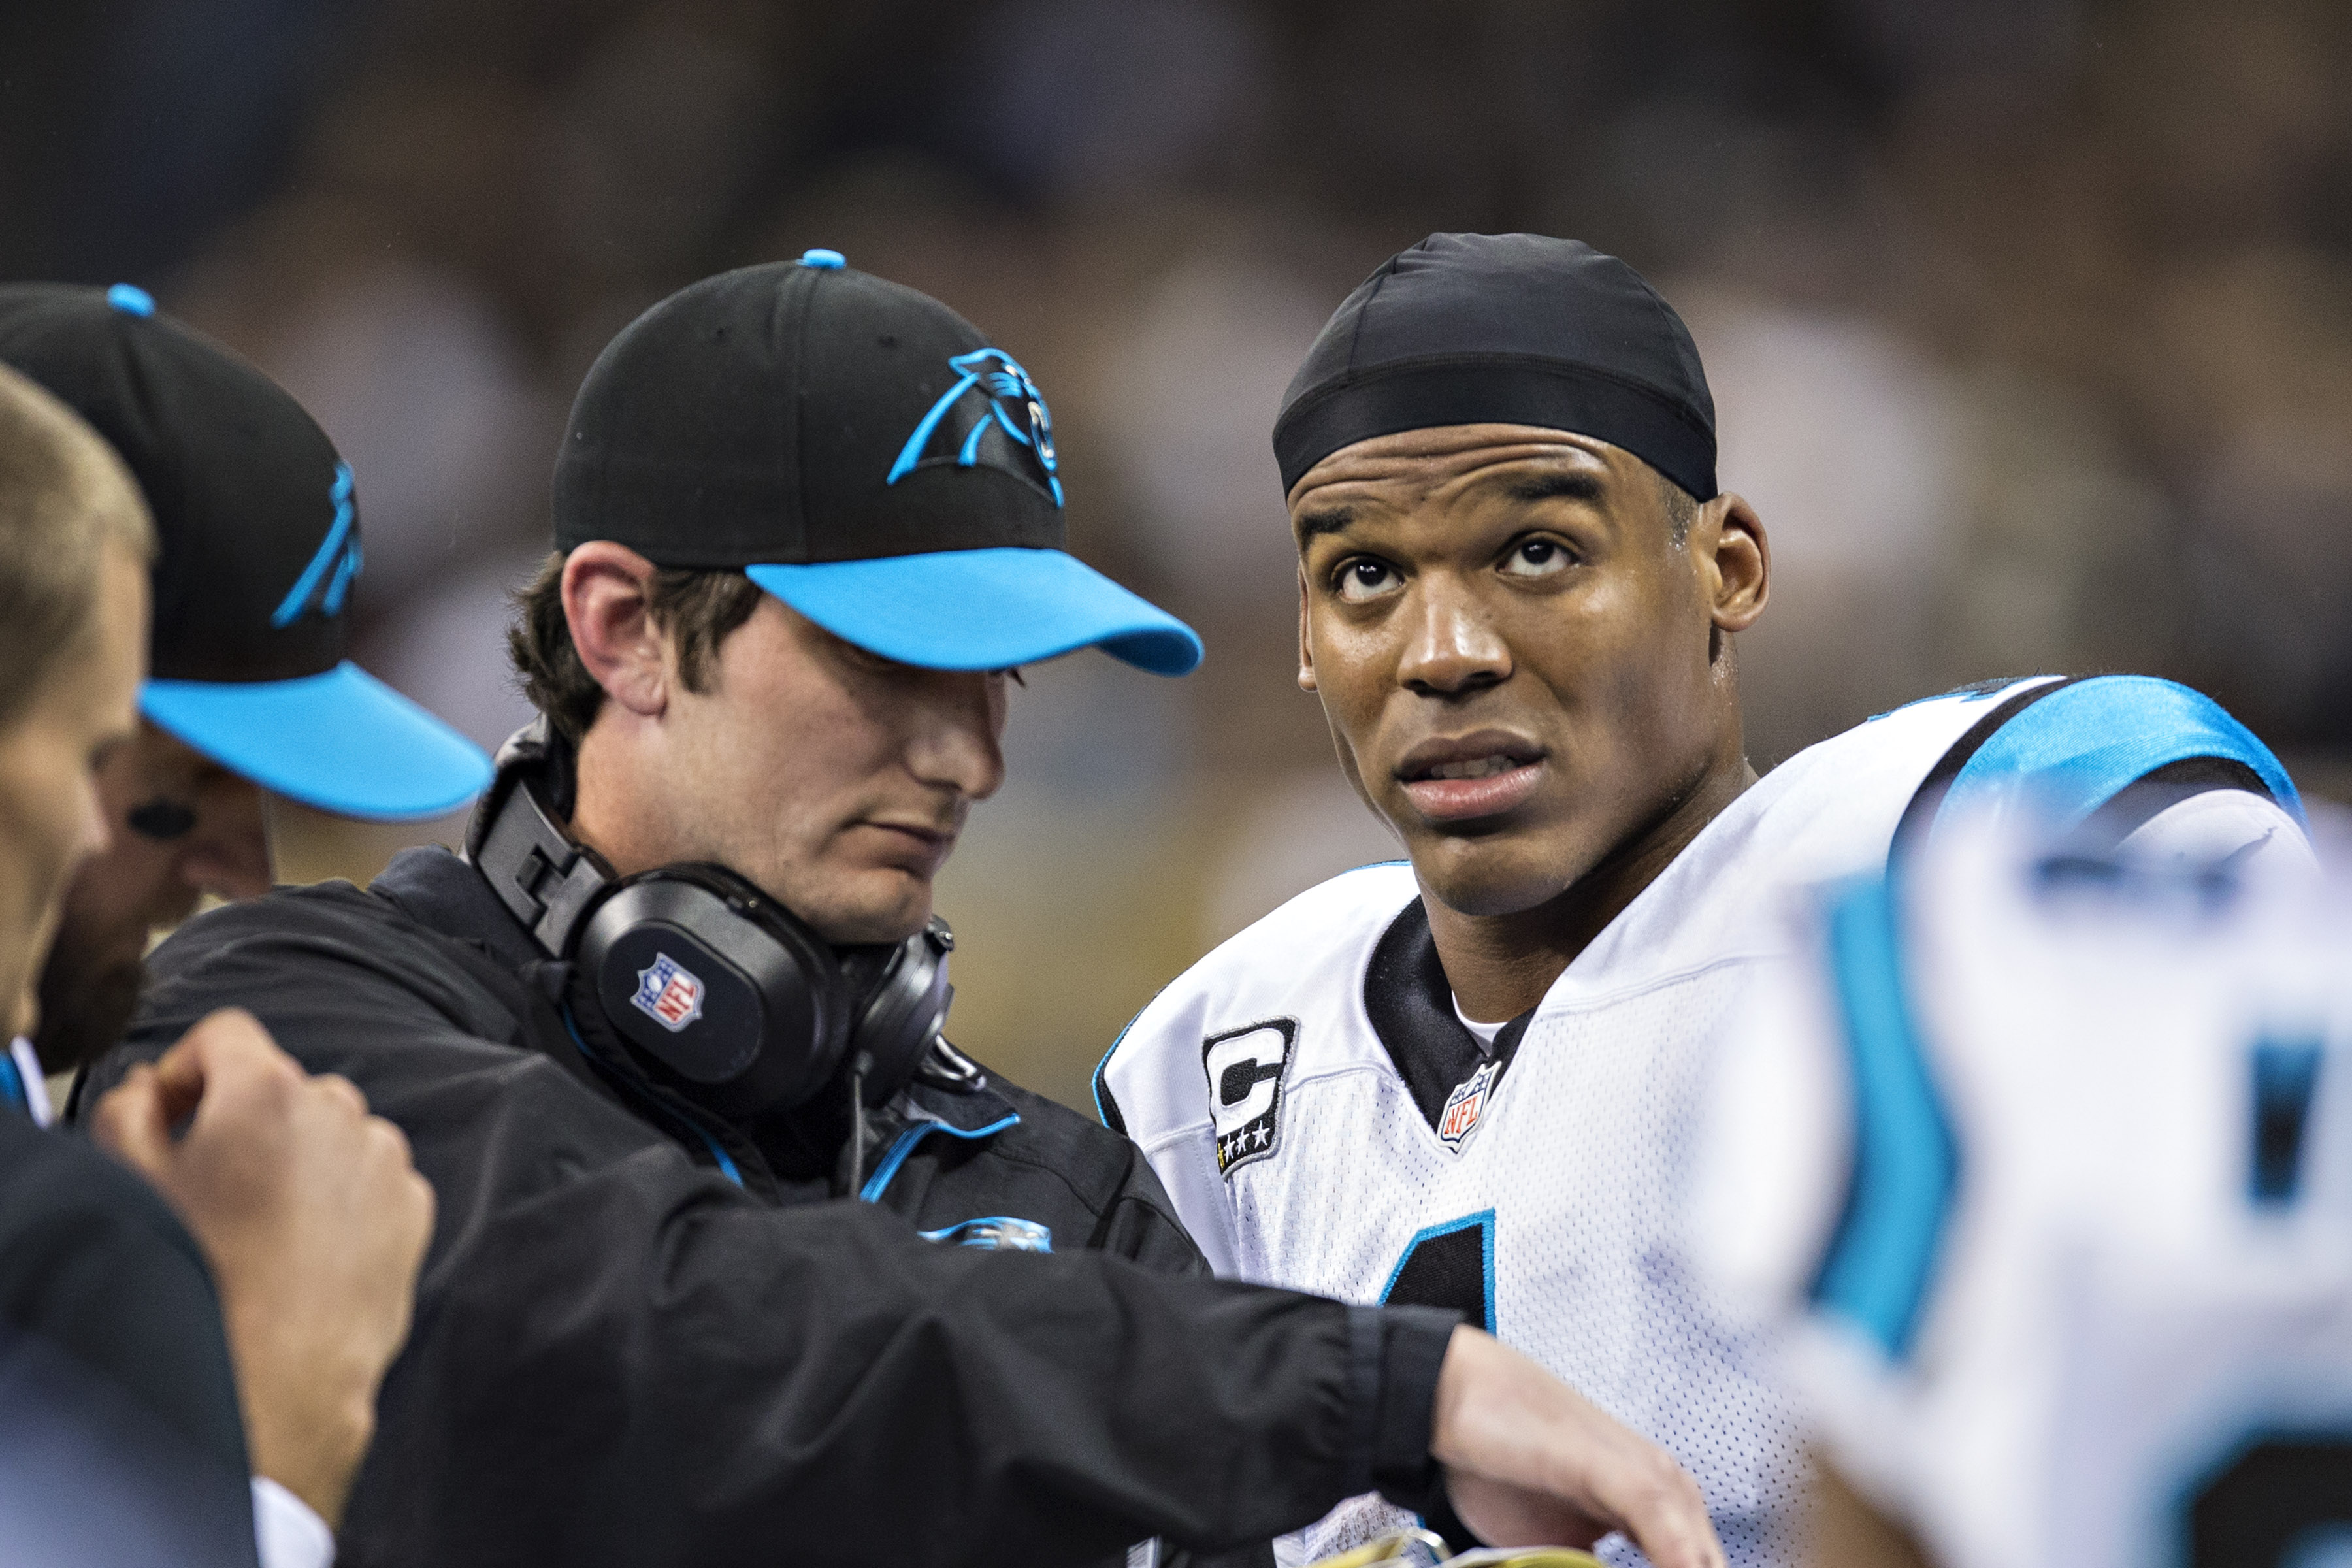 Ken Dorsey, quarterbacks coach of the Carolina Panthers, confers with Cam Newton during a 2013 game. (Getty Images)